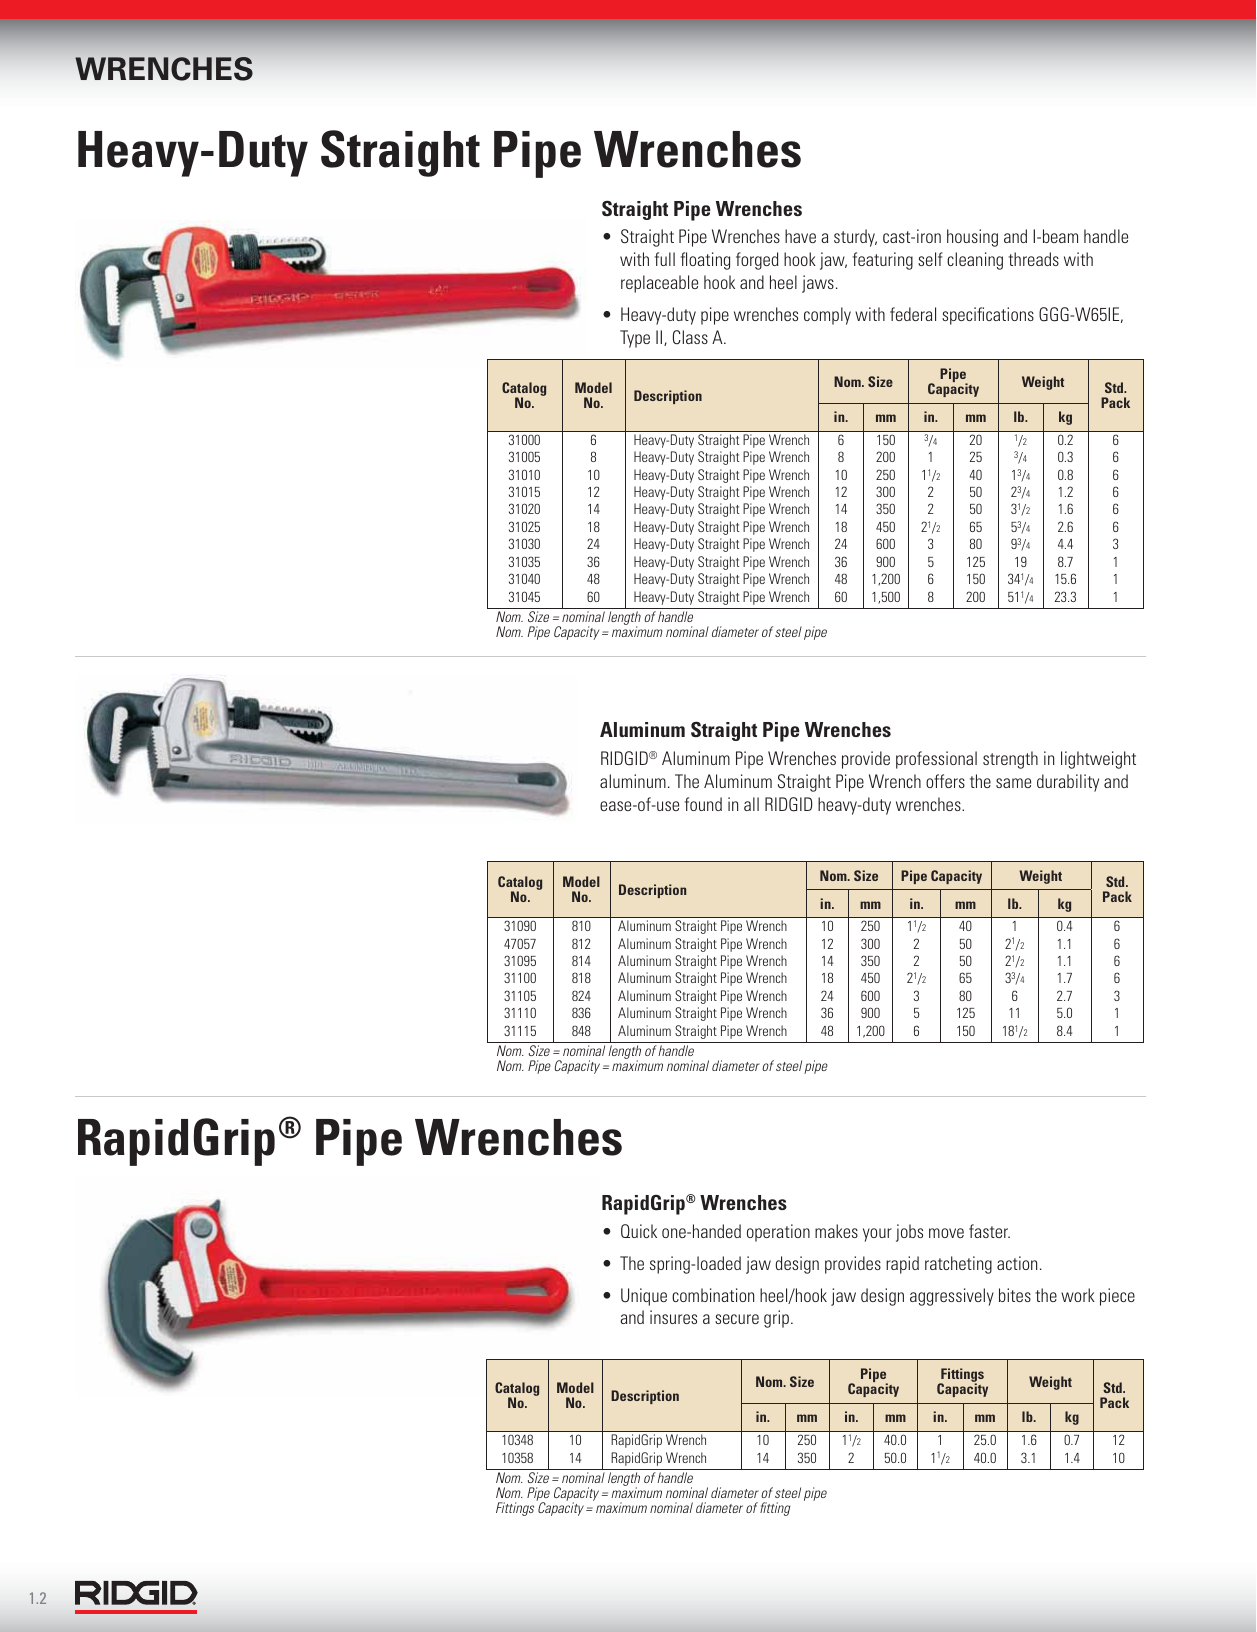 Ridgid 31015 Heavy-Duty Pipe Wrench 300 mm//12 in environ 30.48 cm